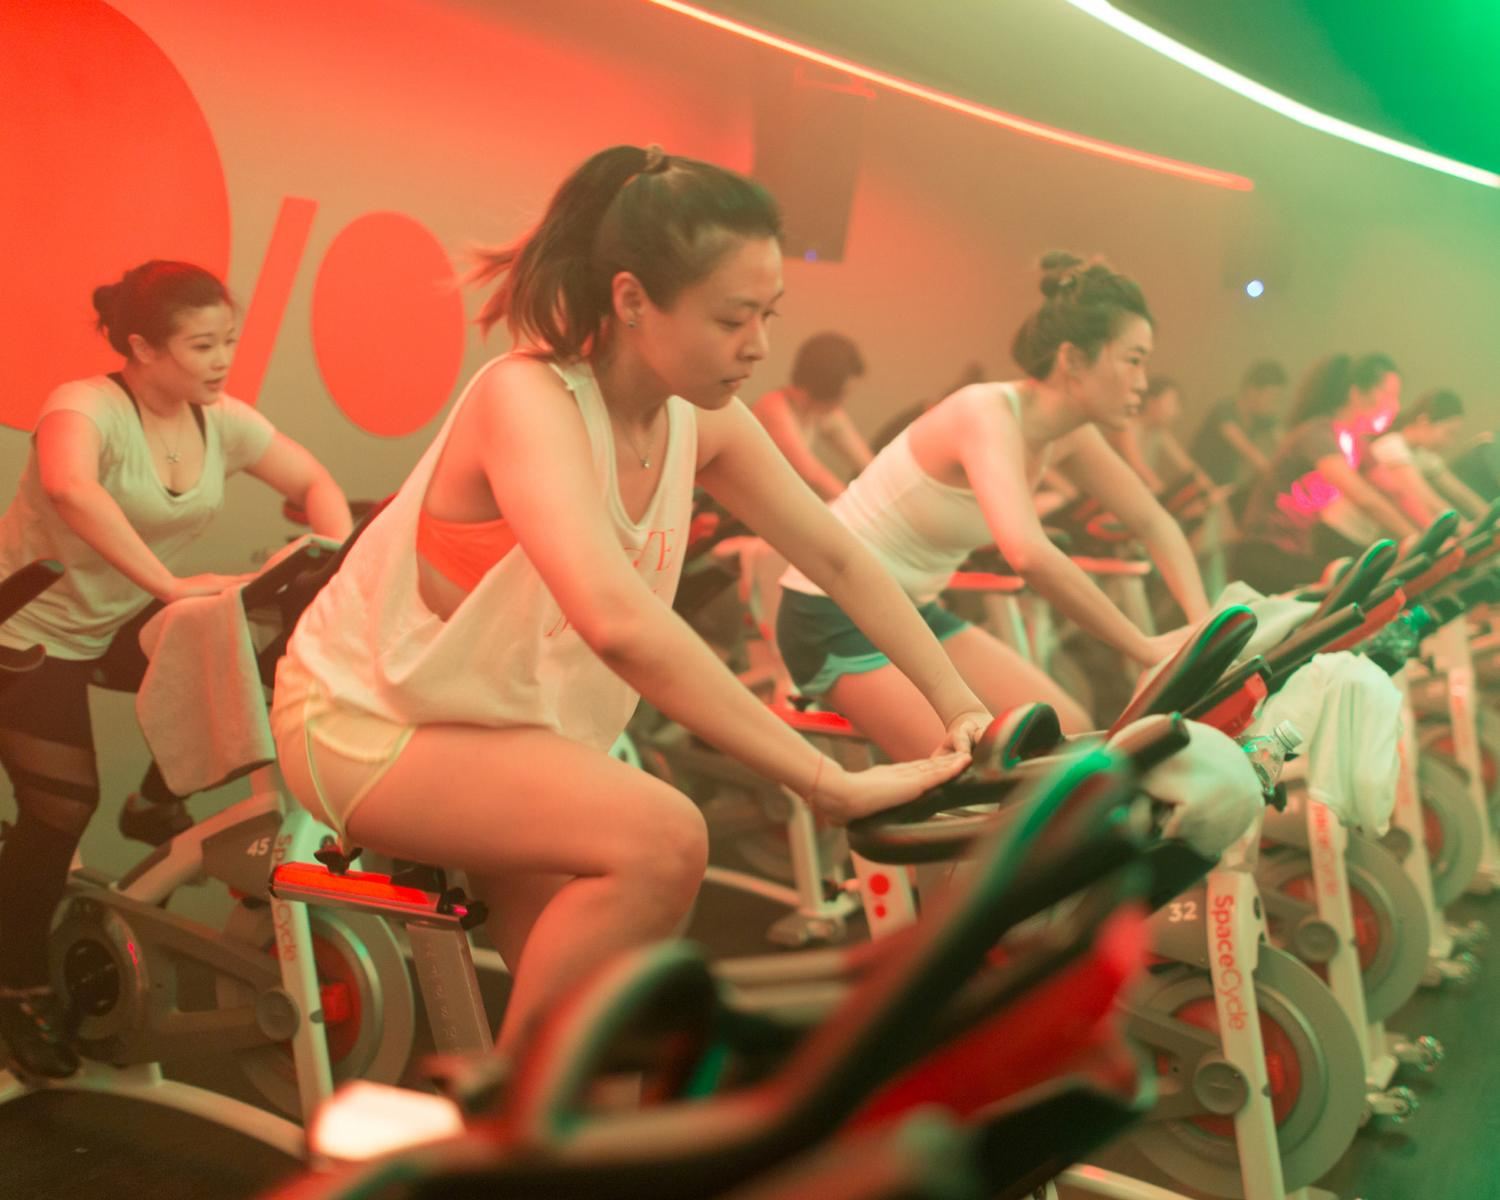 Space Cycle received backing of $15m from Chinese internet giant Alibaba to extend its influence beyond fitness and into lifestyle